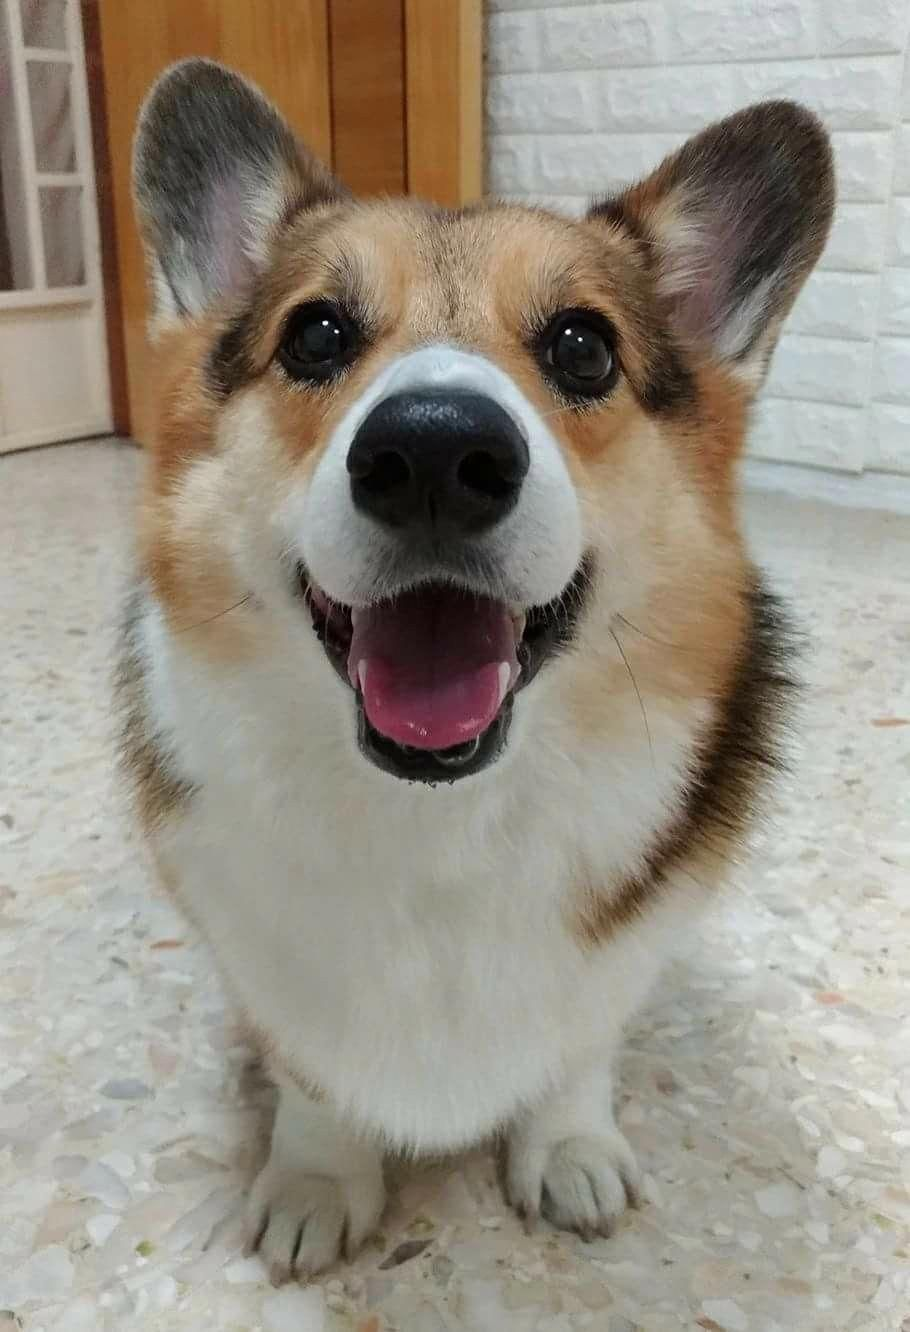 Corgi Smile Corgis Do You Love Cute Dogs Like This Follow